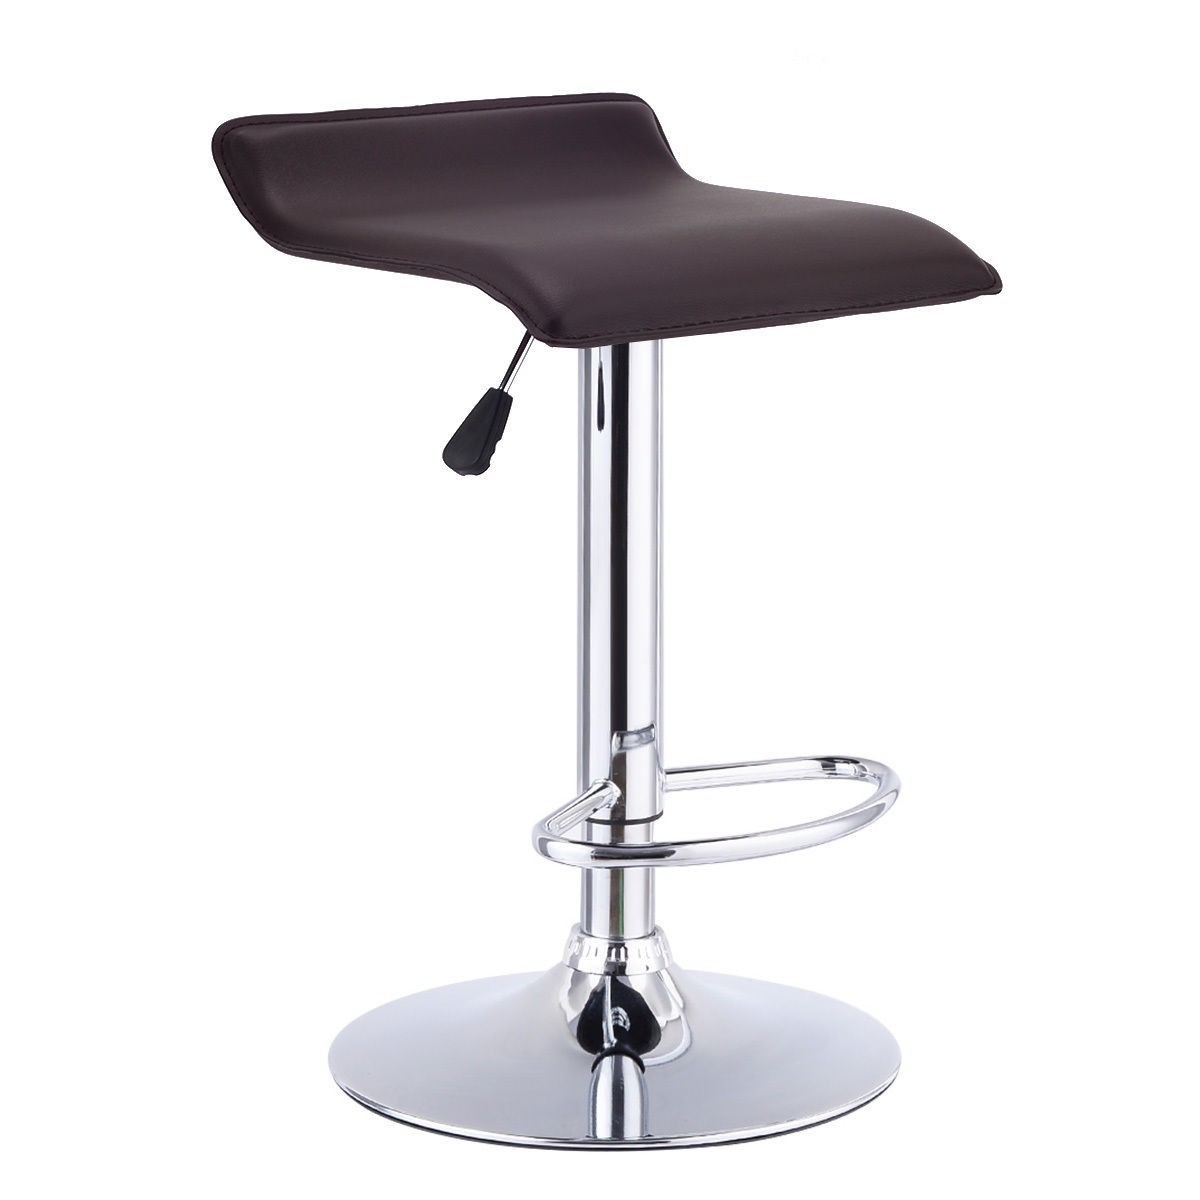 1 Pc Swivel Bar Stool Adjustable Modern Leather Dinning